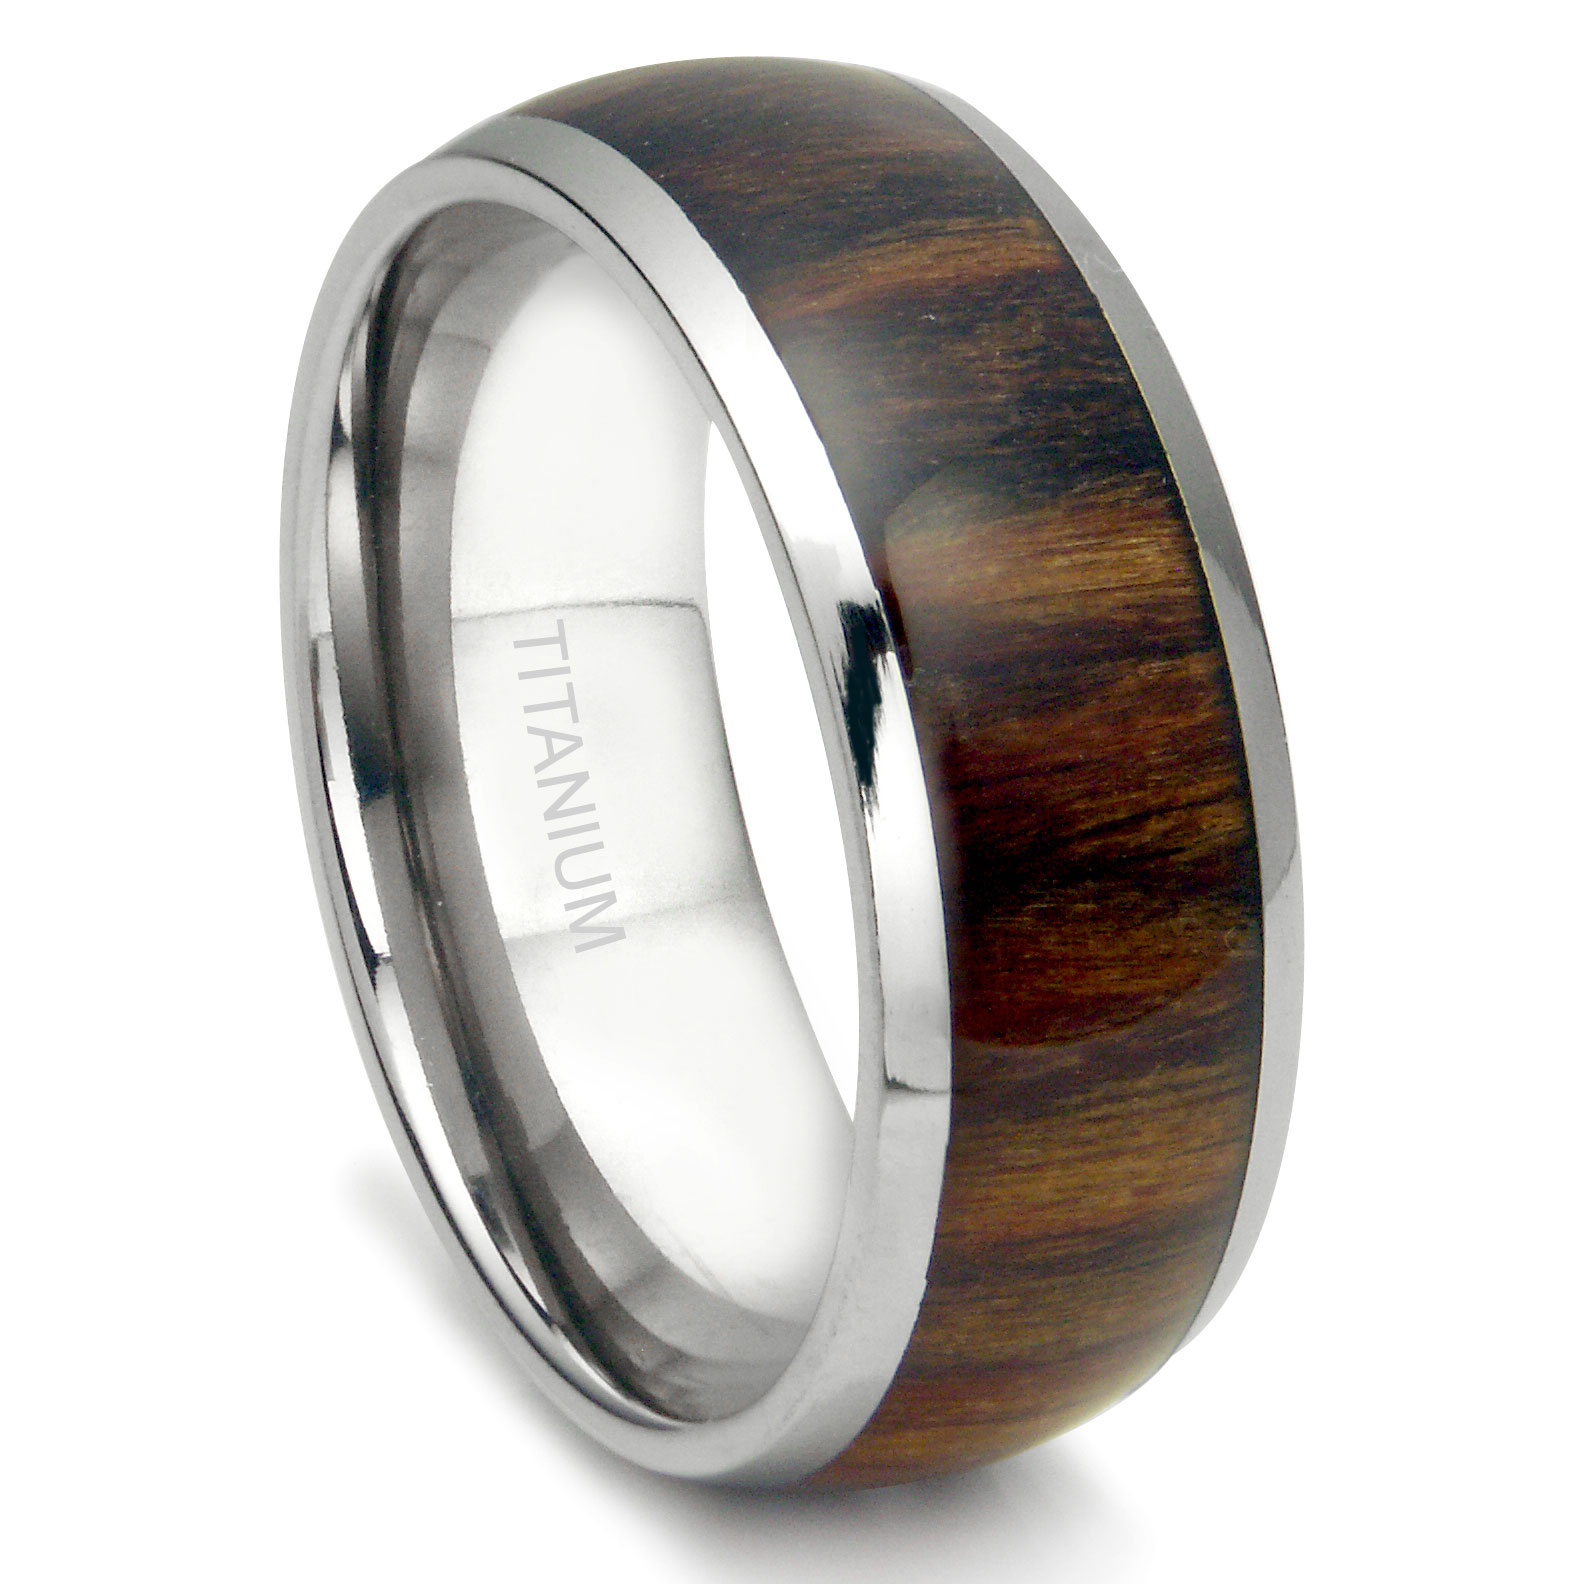 Titanium 8mm Domed Santos Rosewood Inlay Wedding Band Ring